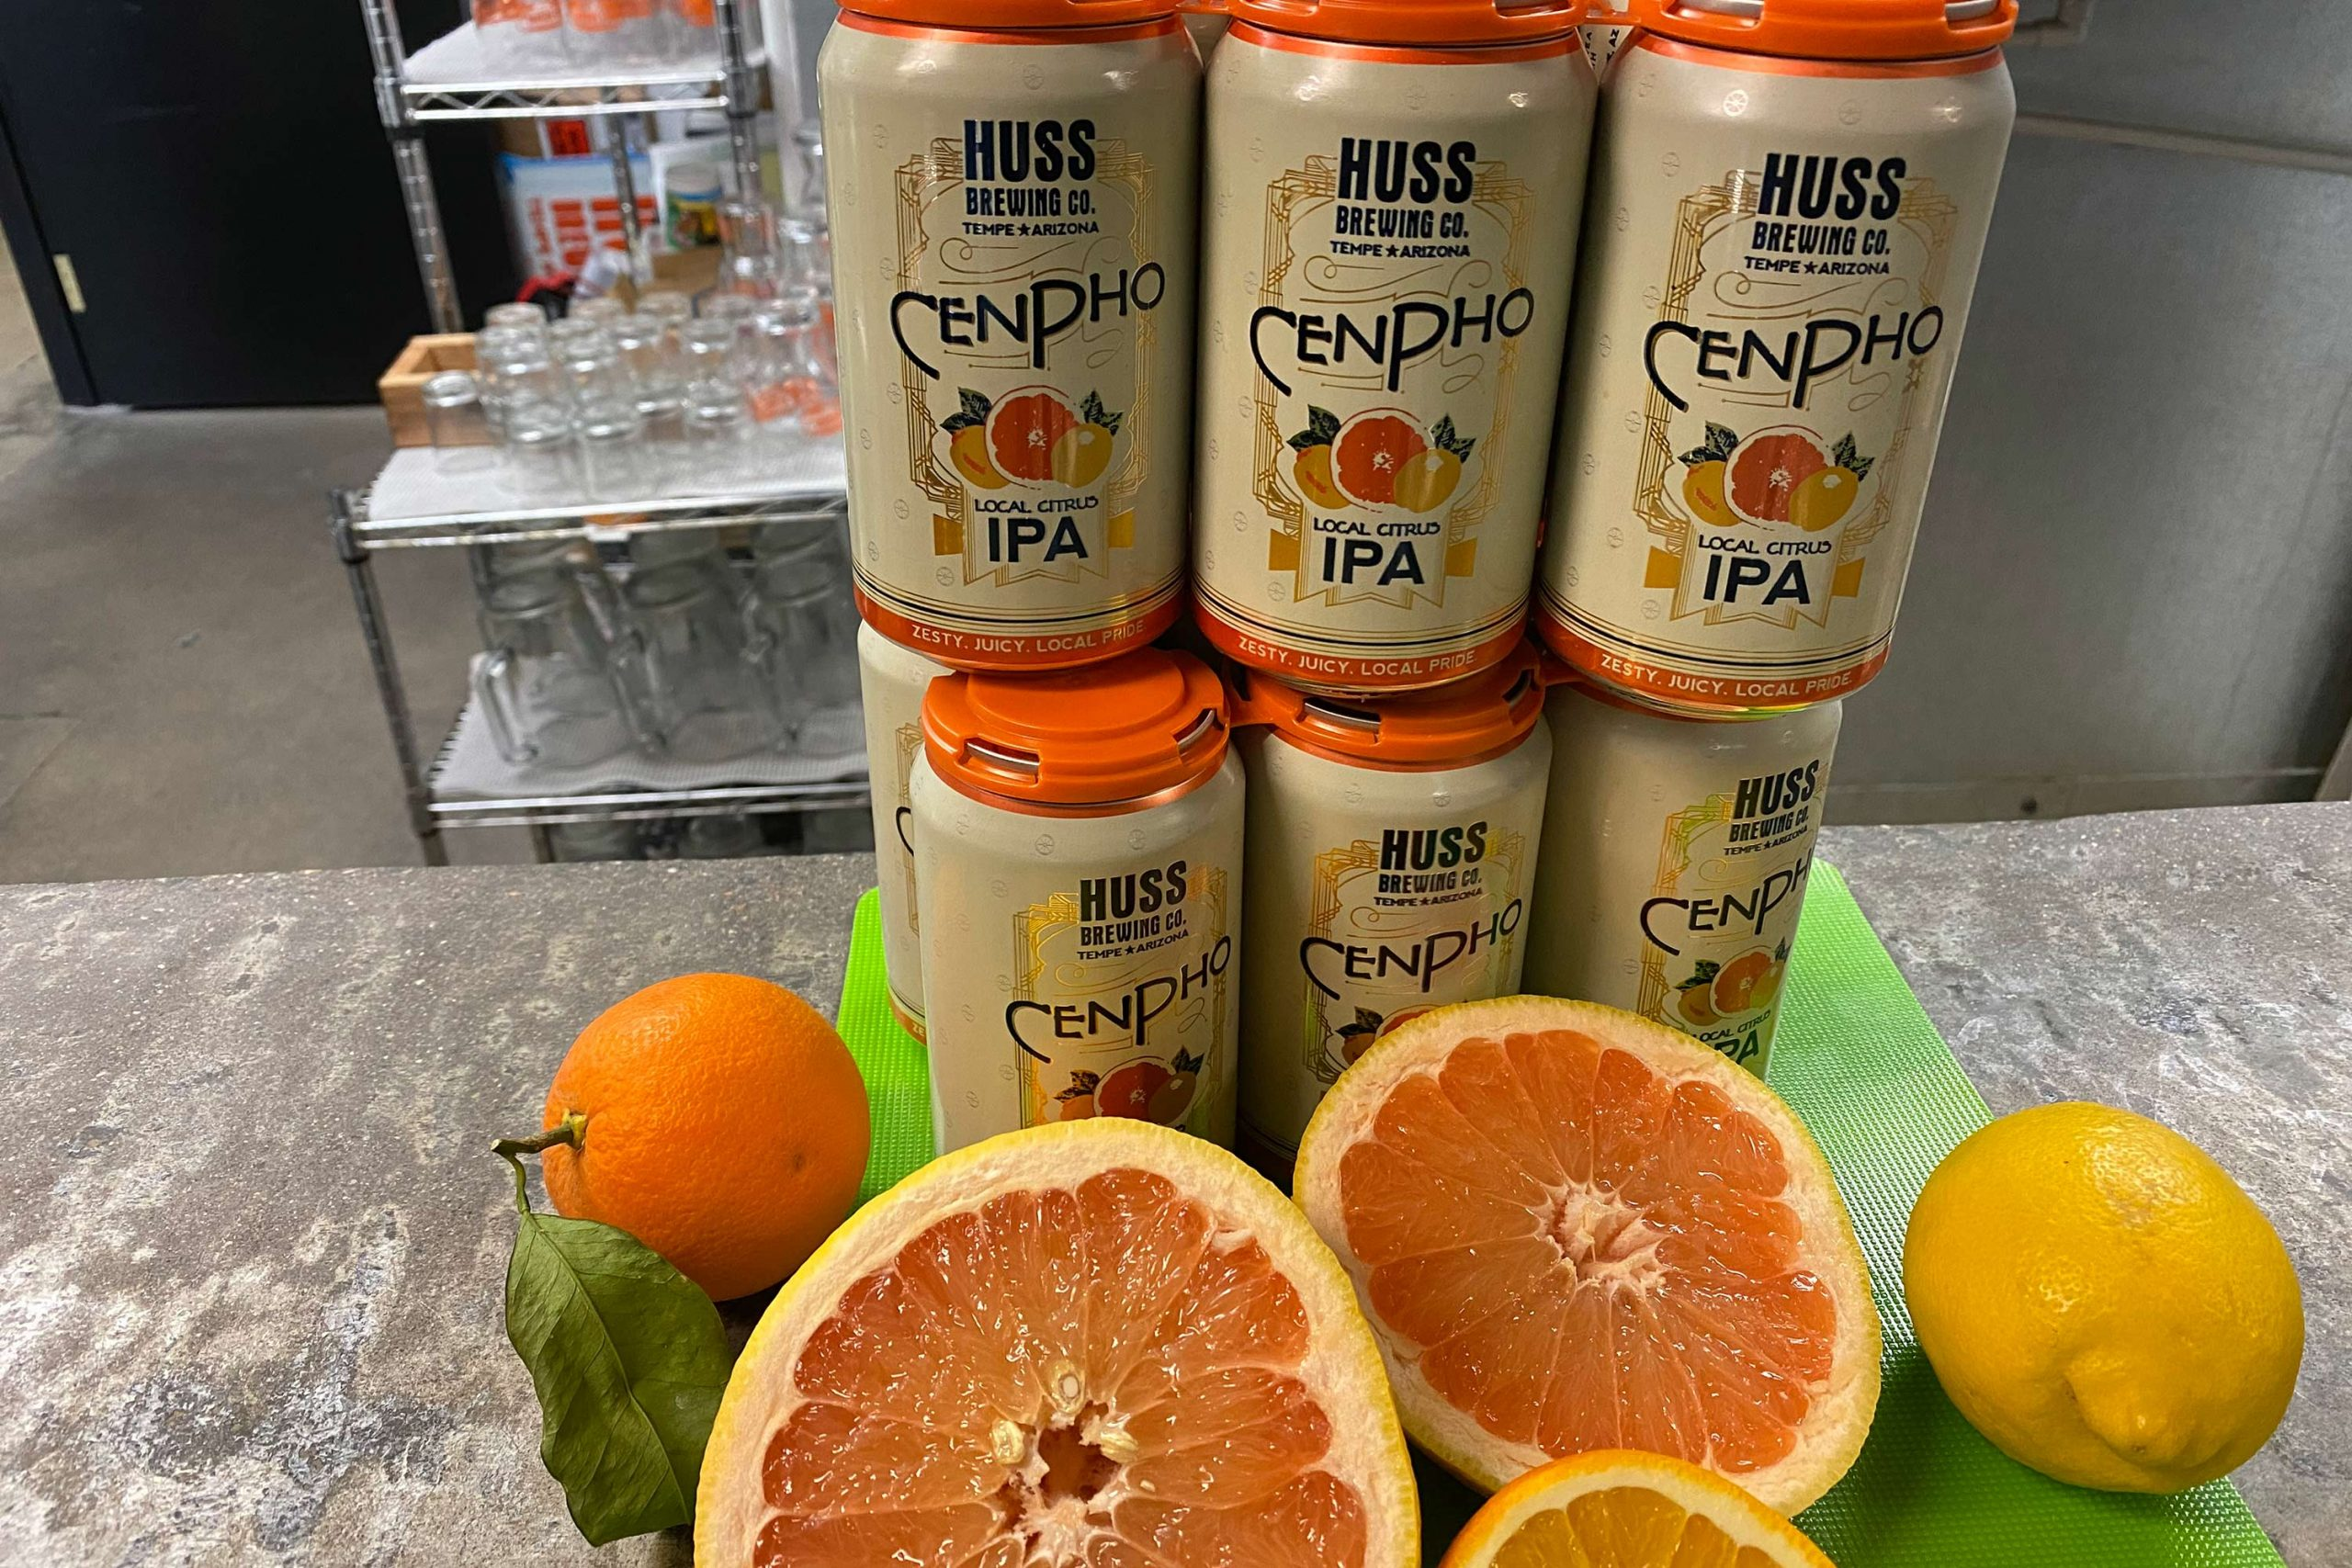 CenPho Citrus IPA from Huss Brewing